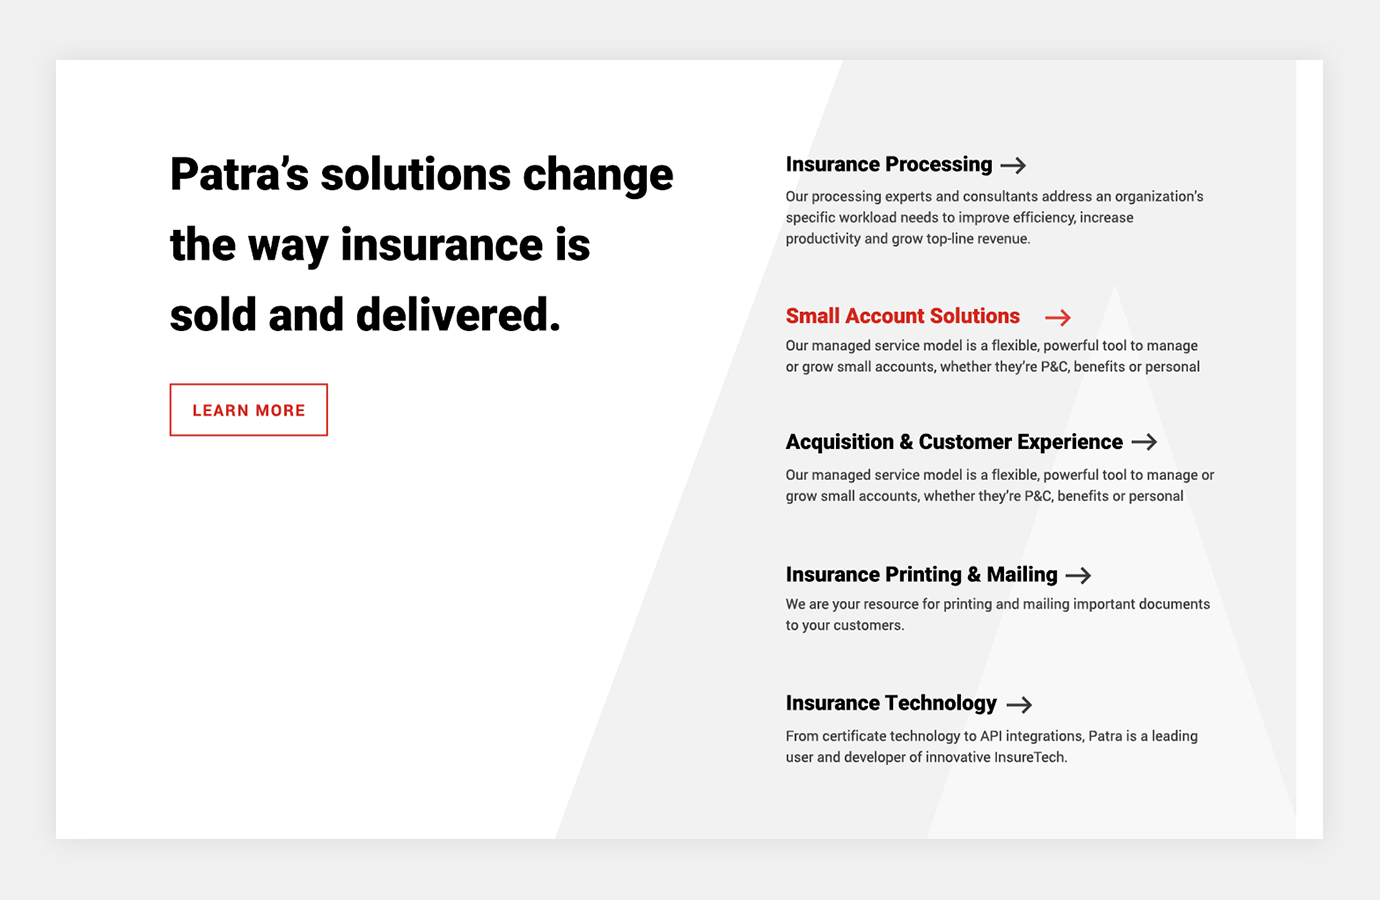 Screenshot of Patra website showing solutions the company offers